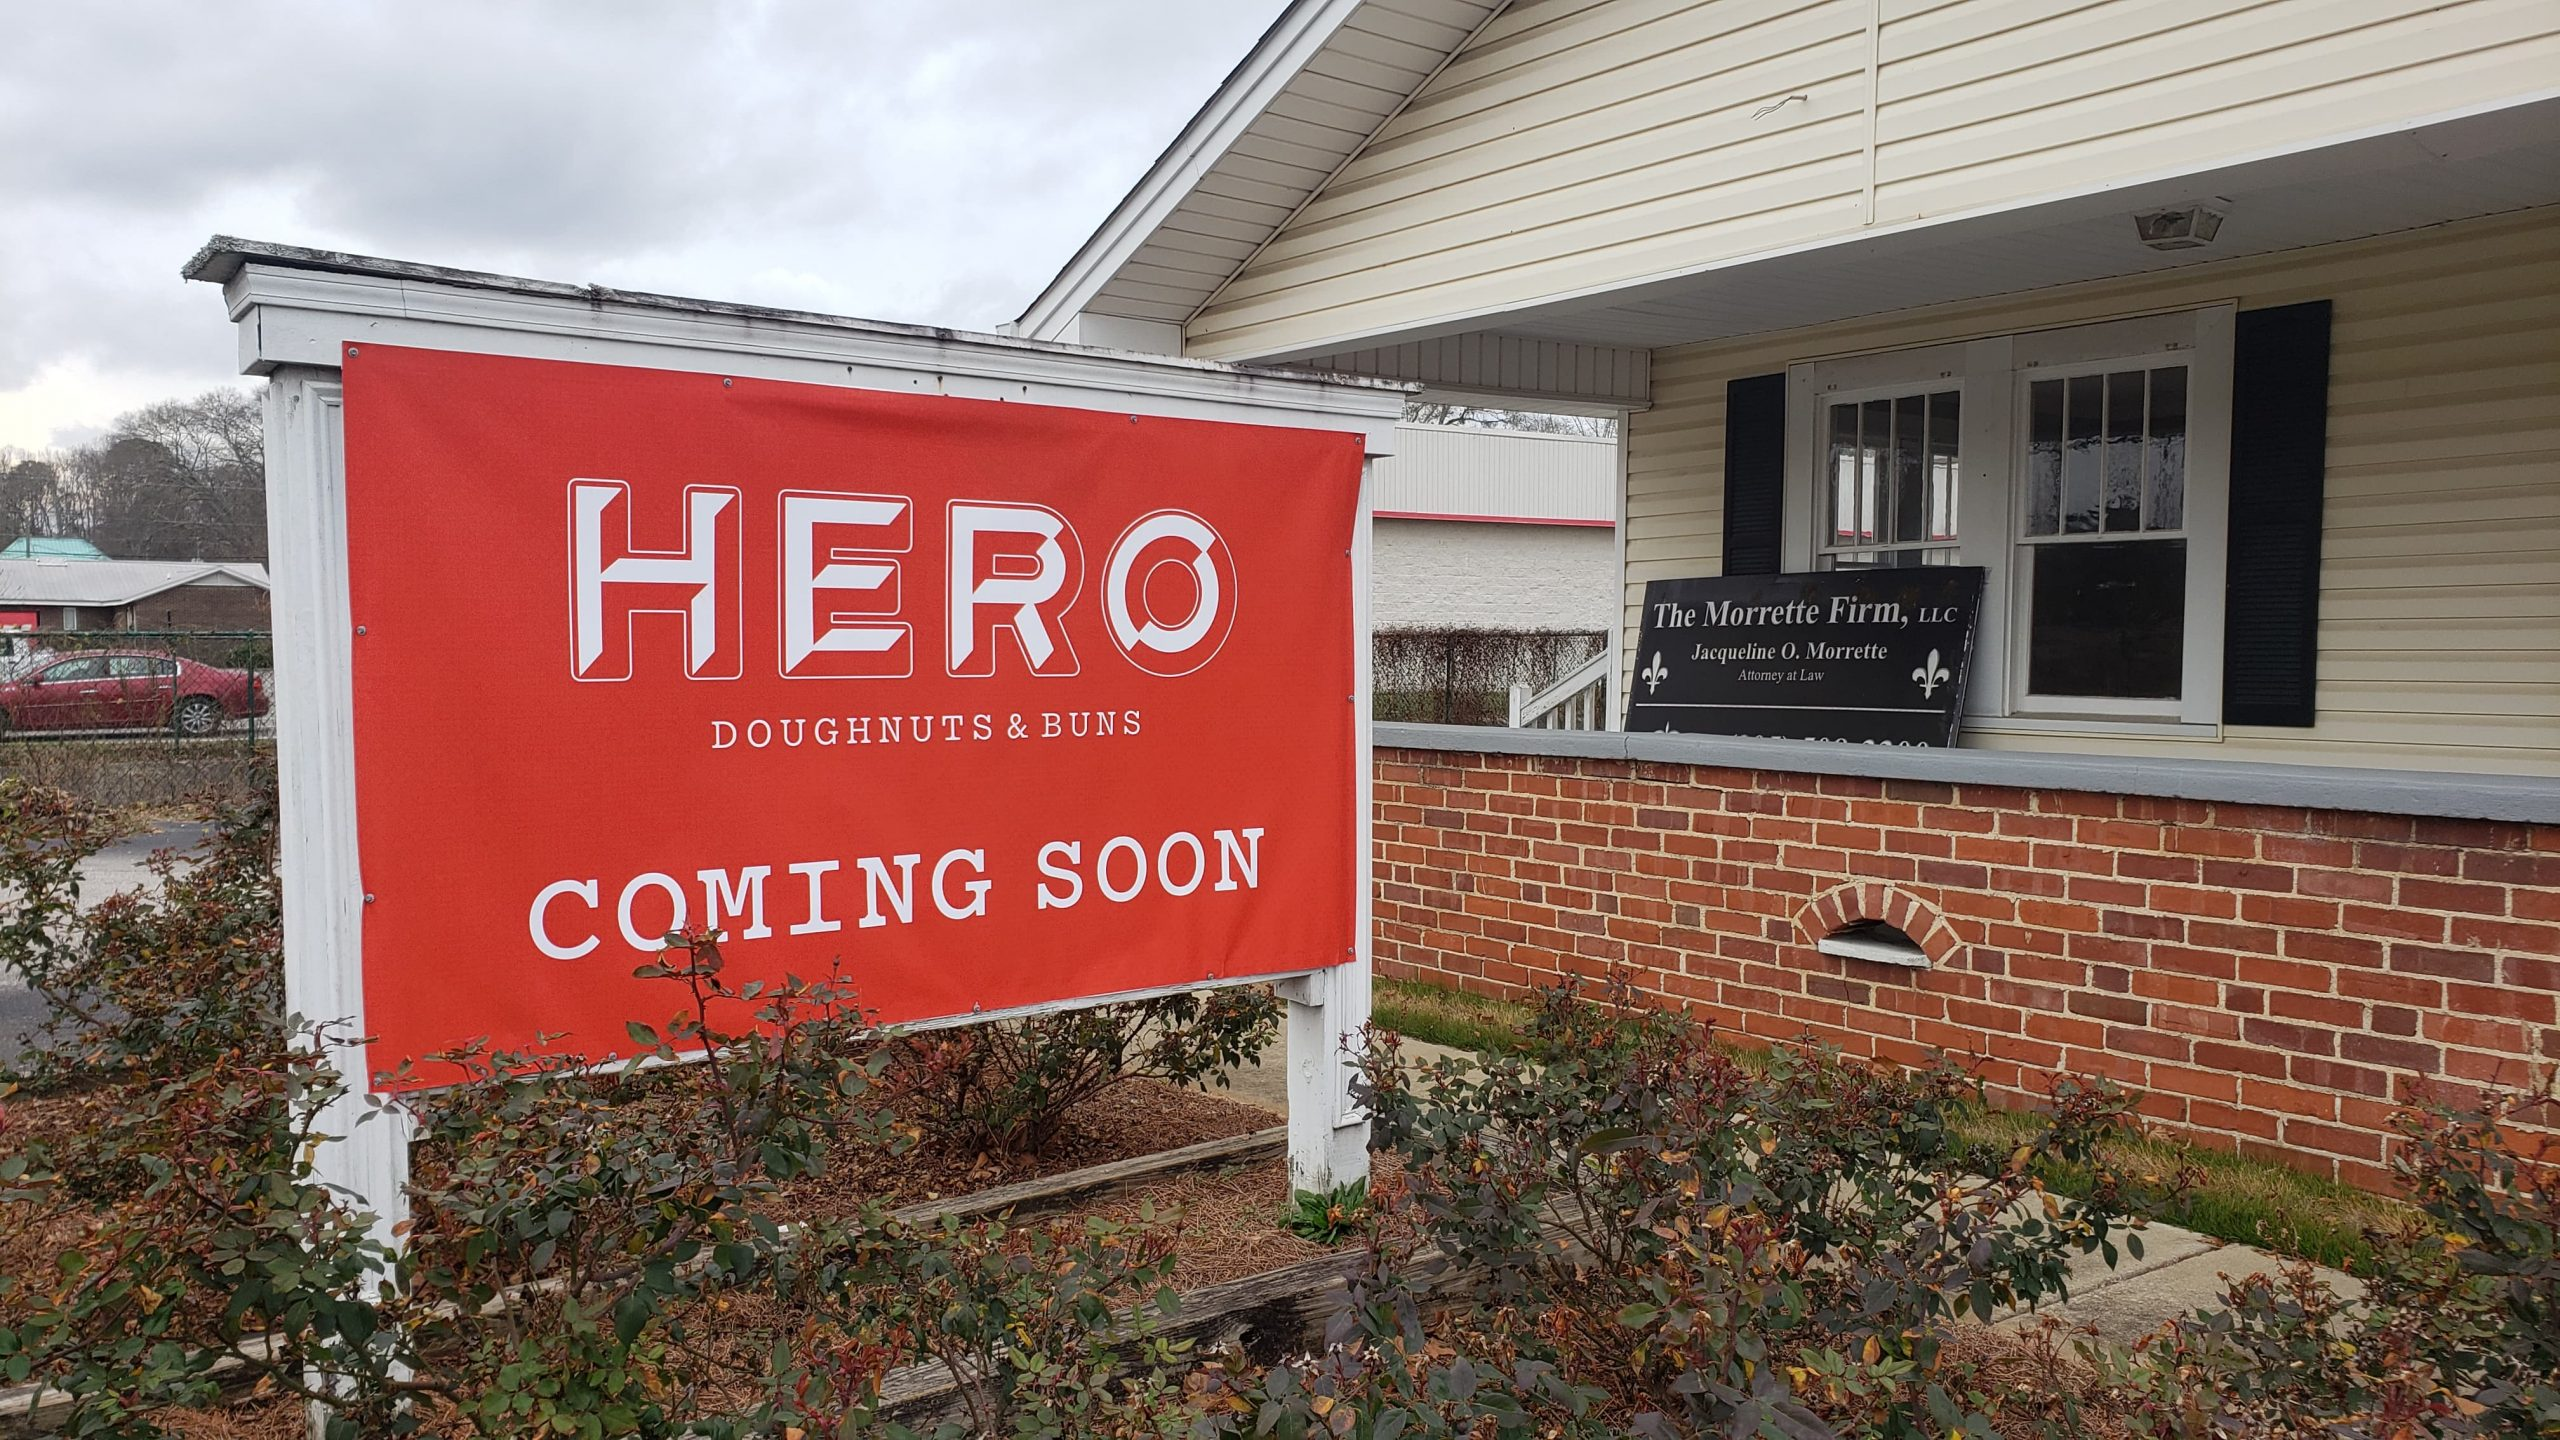 Hero Doughnuts & Buns coming soon to Trussville